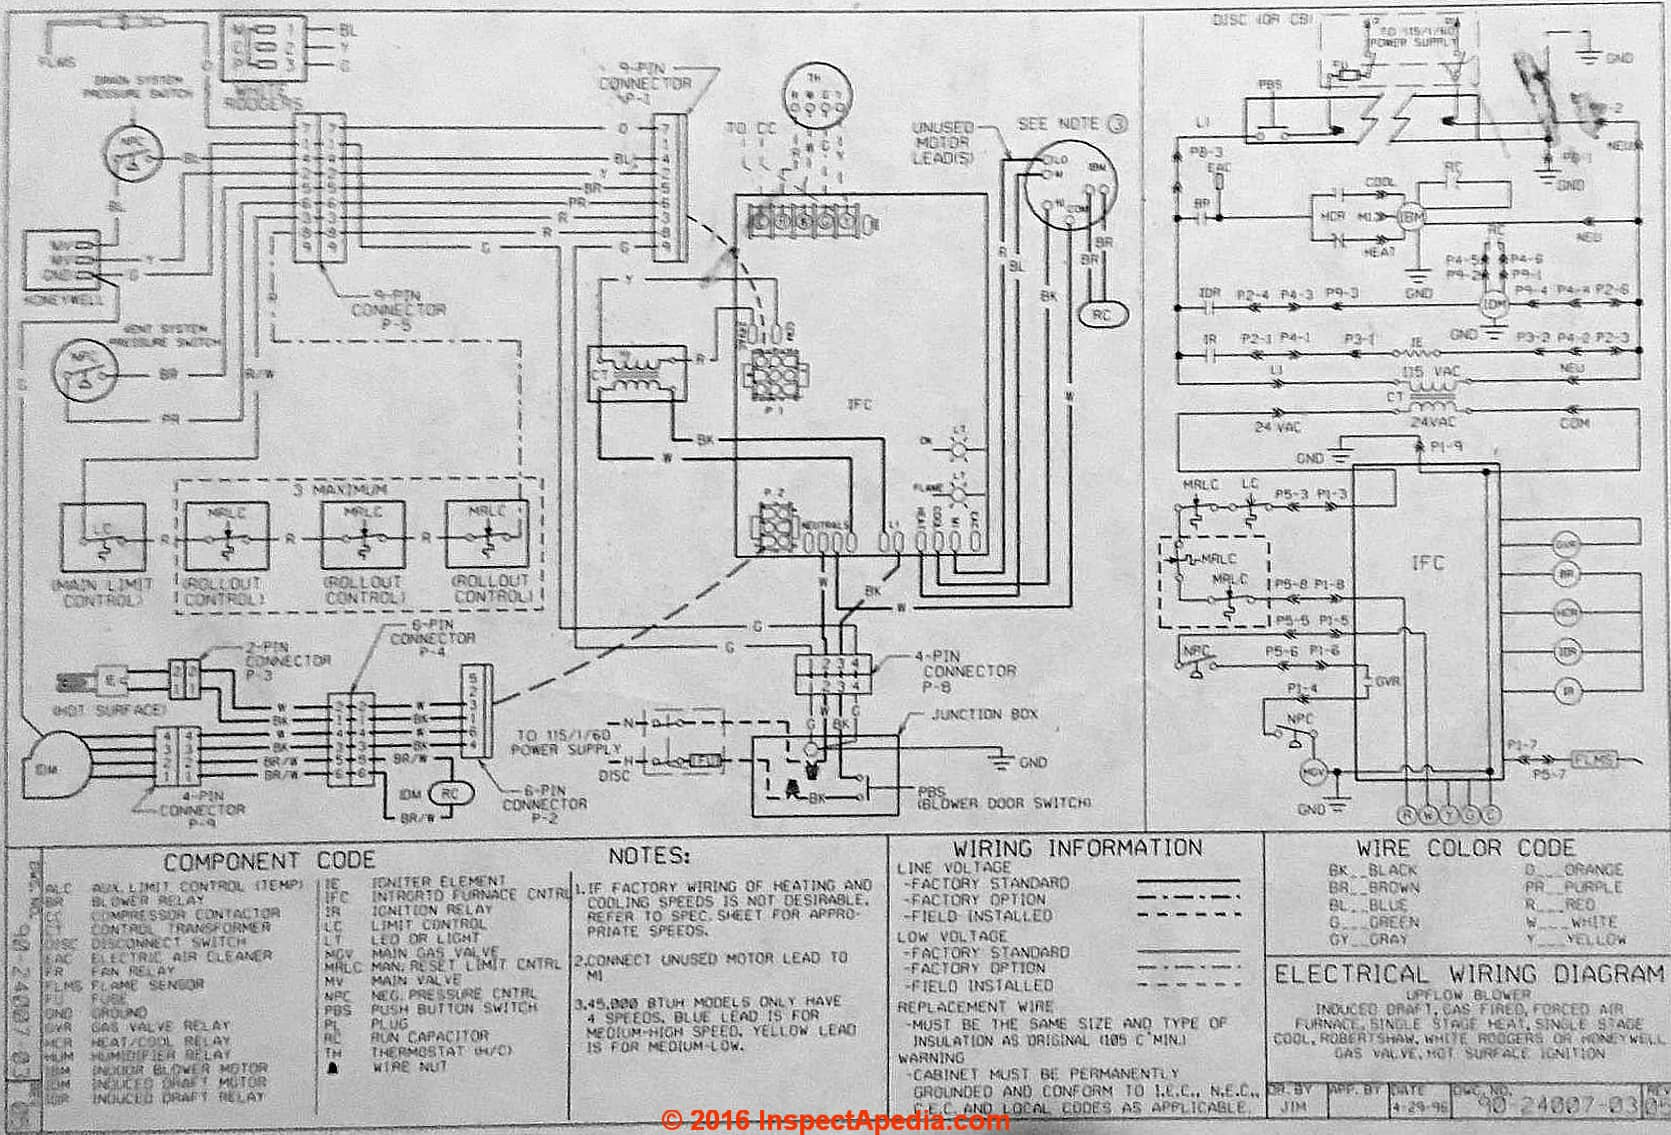 Rheem_AHU_Wiring_Diagram_IAP air conditioner heat pump faqs electric heat pump wiring diagram at virtualis.co